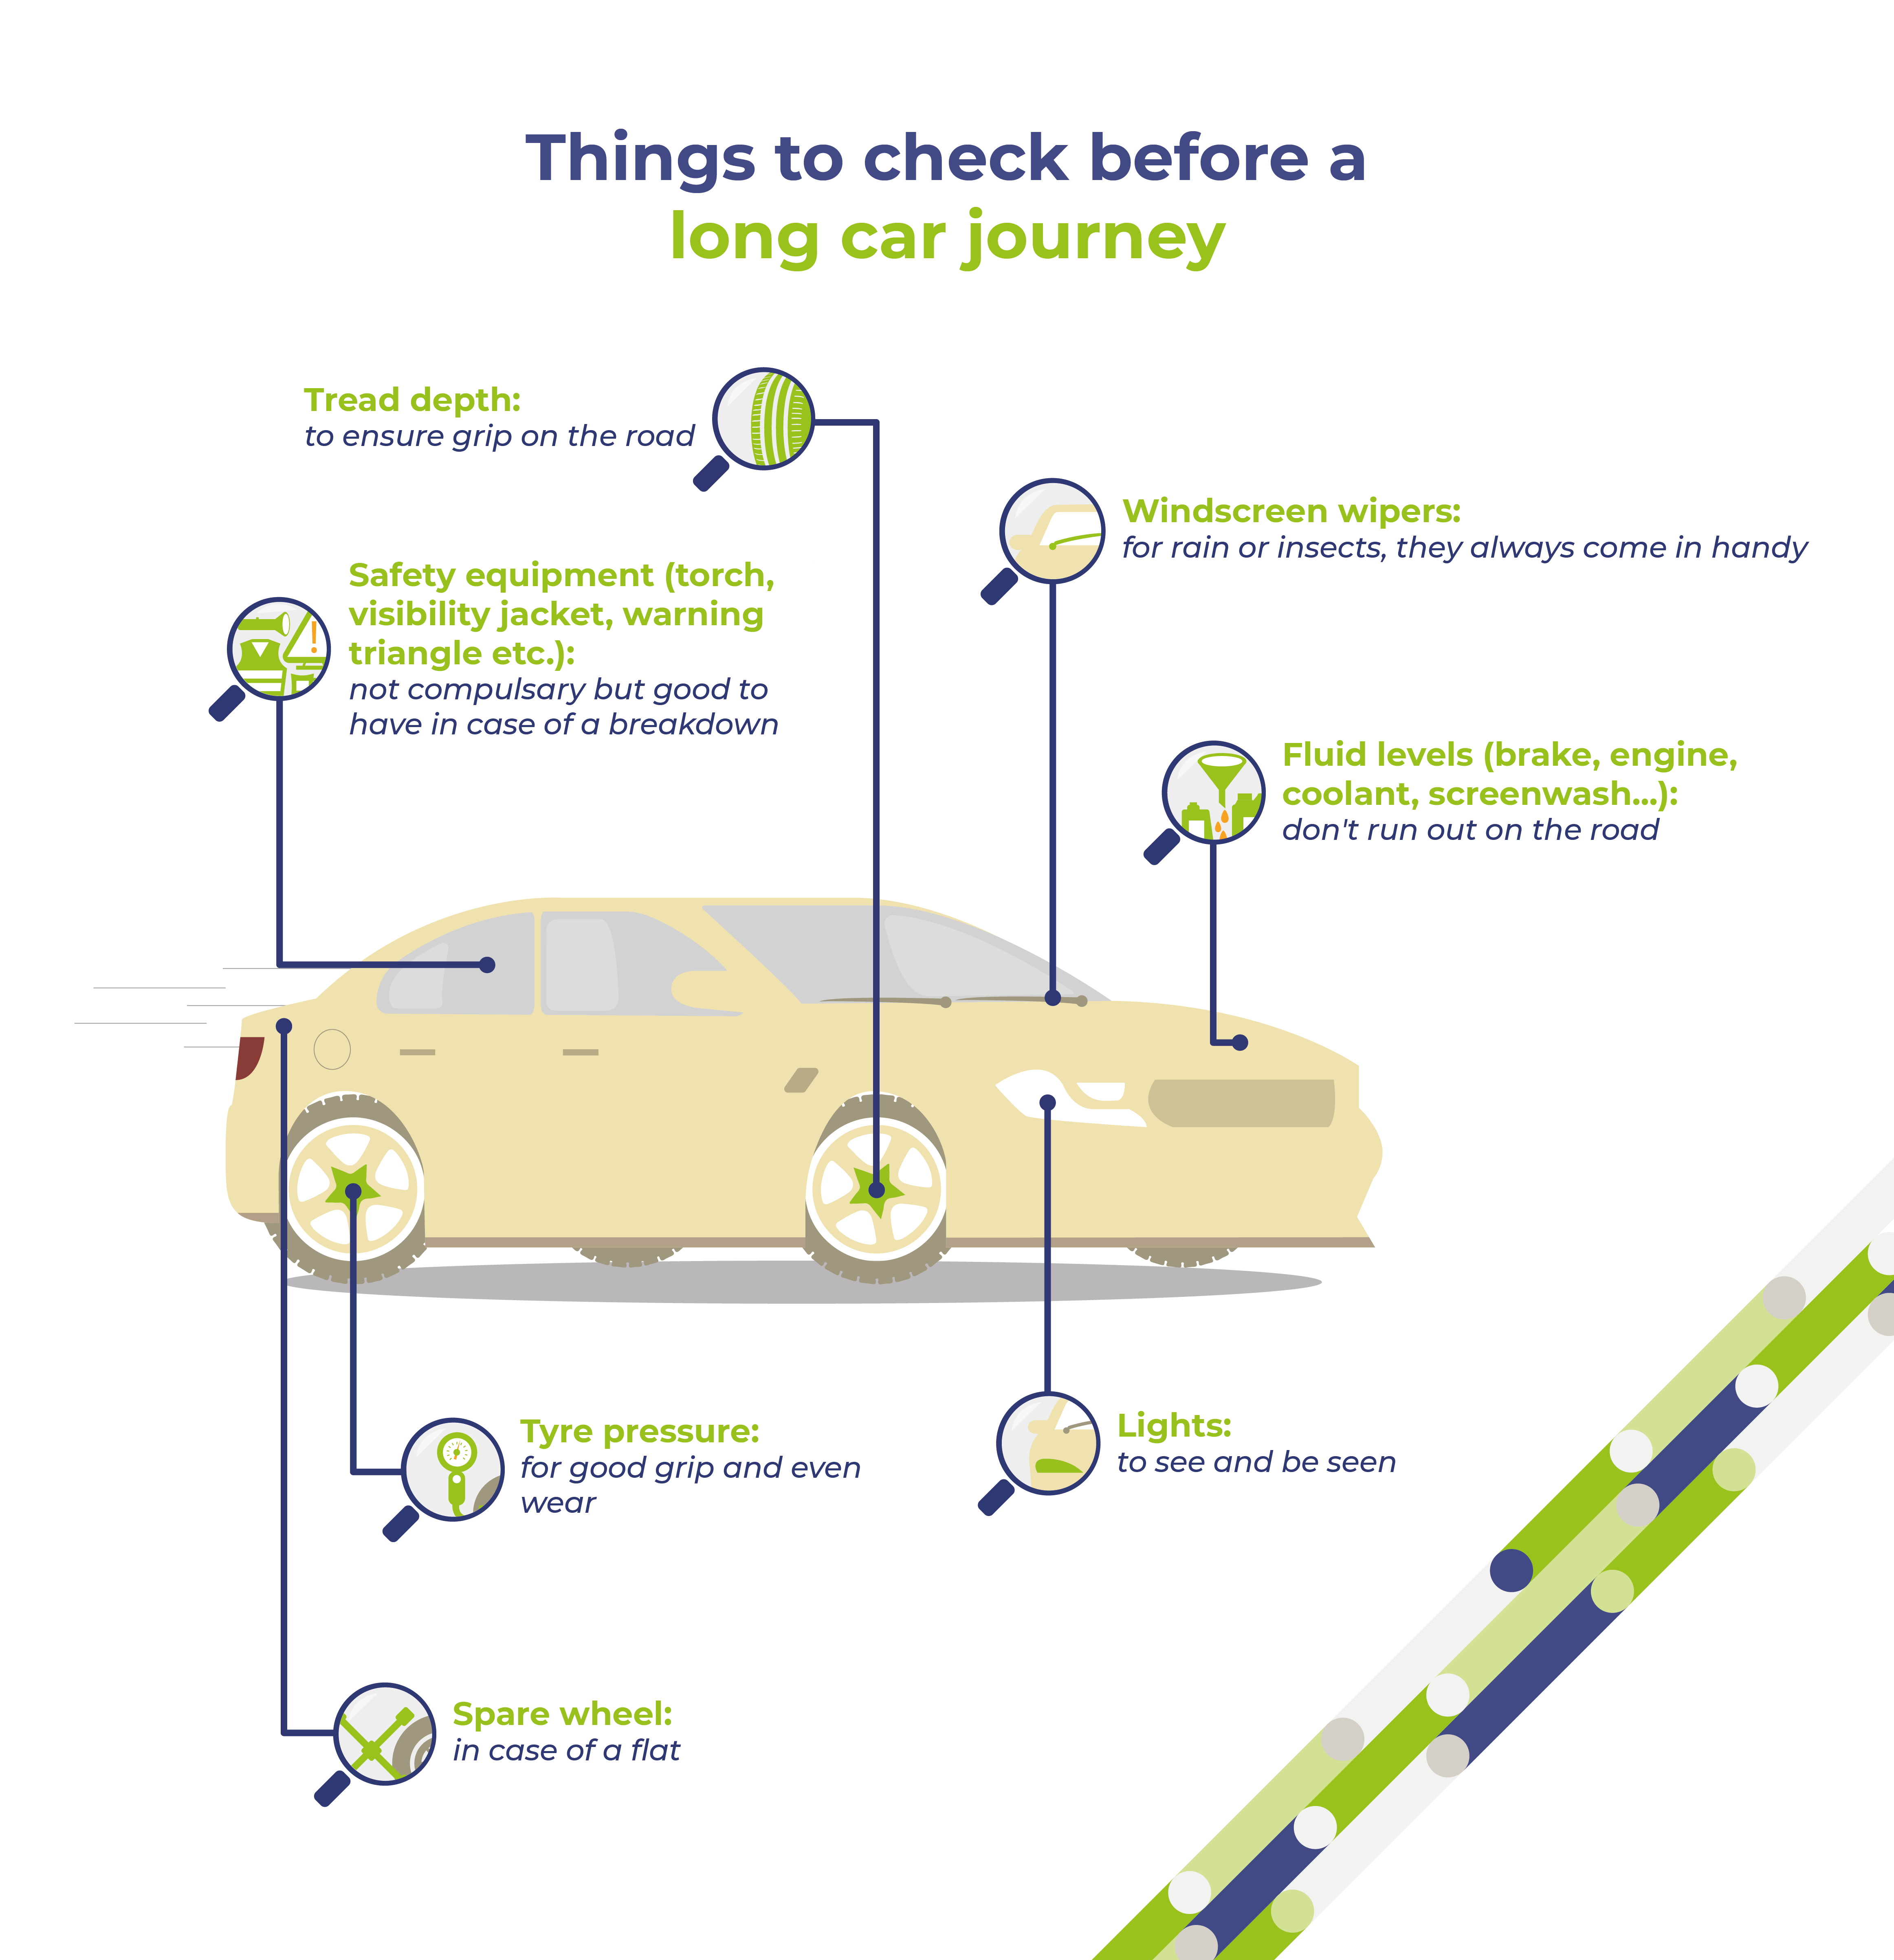 Checklist of thing to check before a long car journey